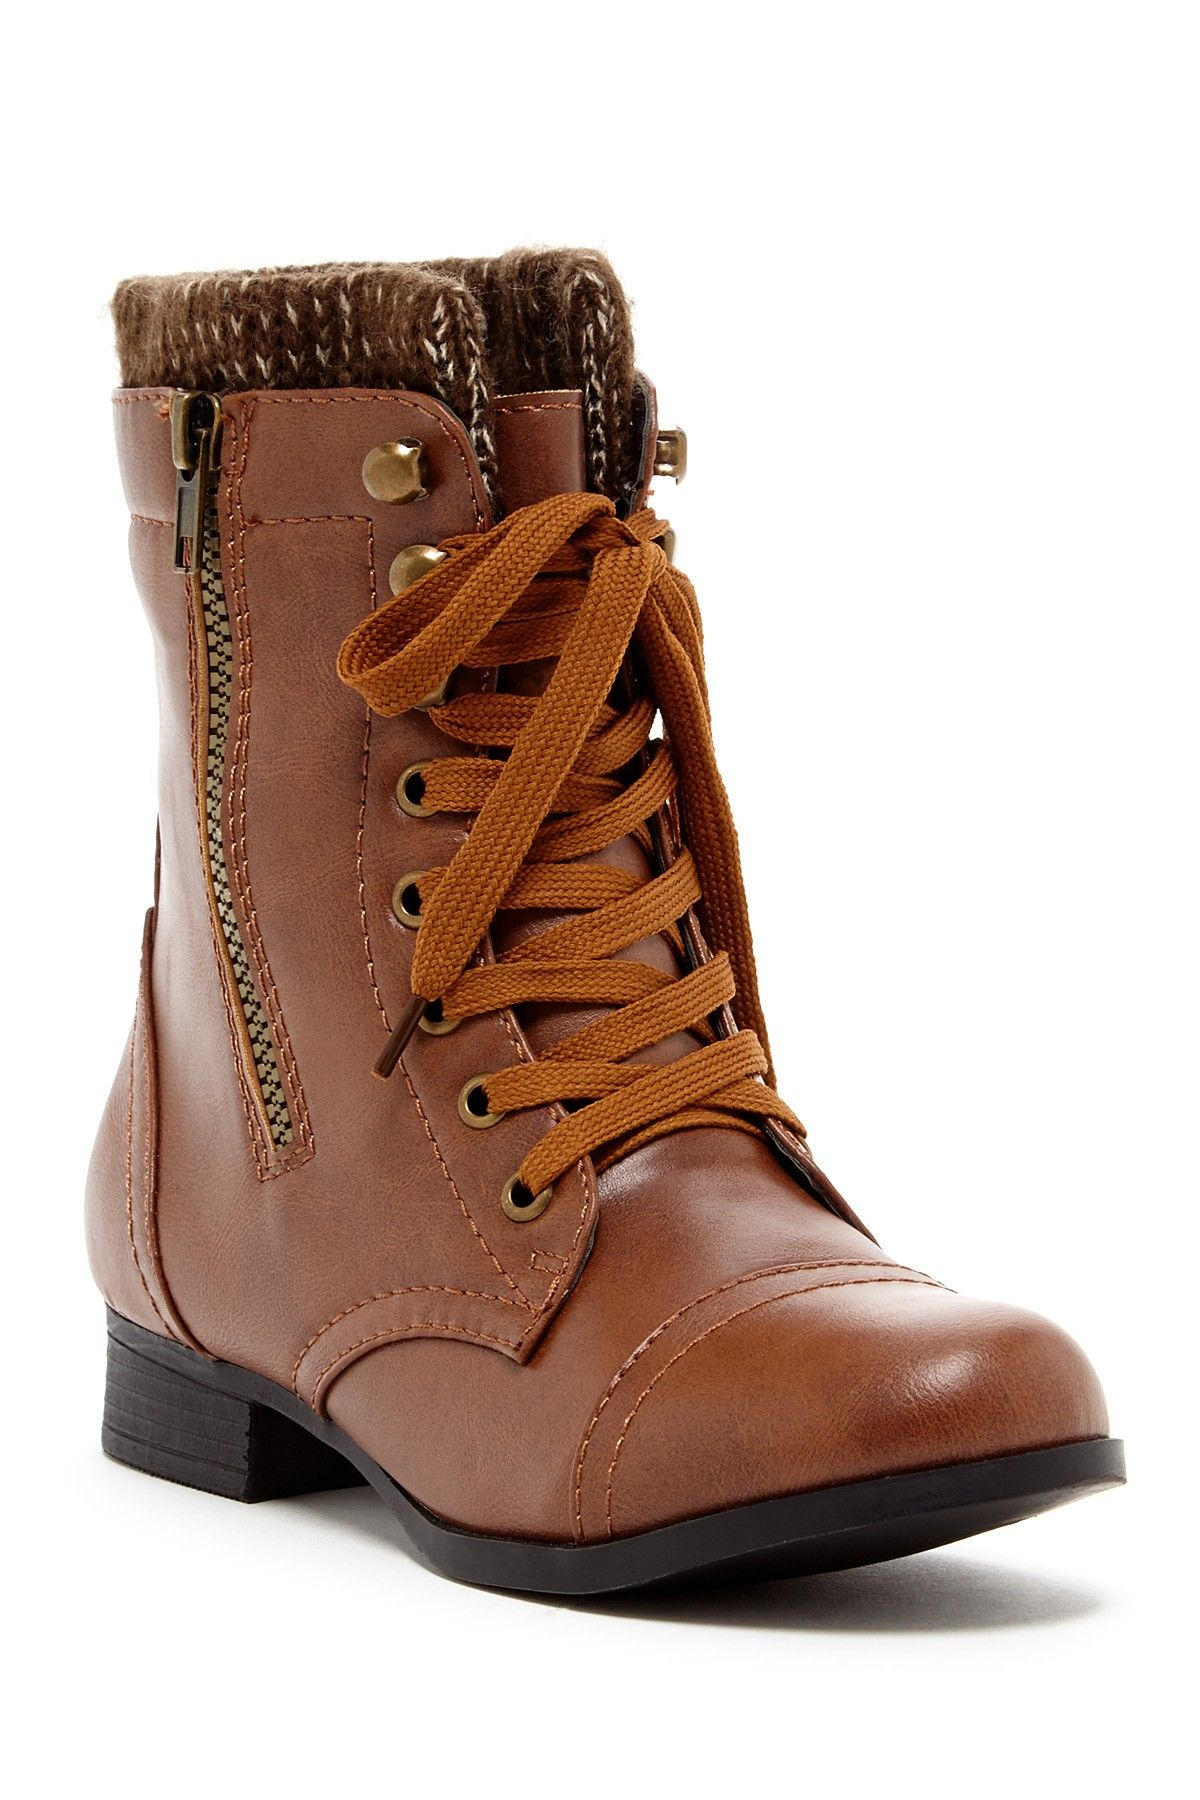 42e9dc603f2d Lace-up Cloth Boot on HauteLook